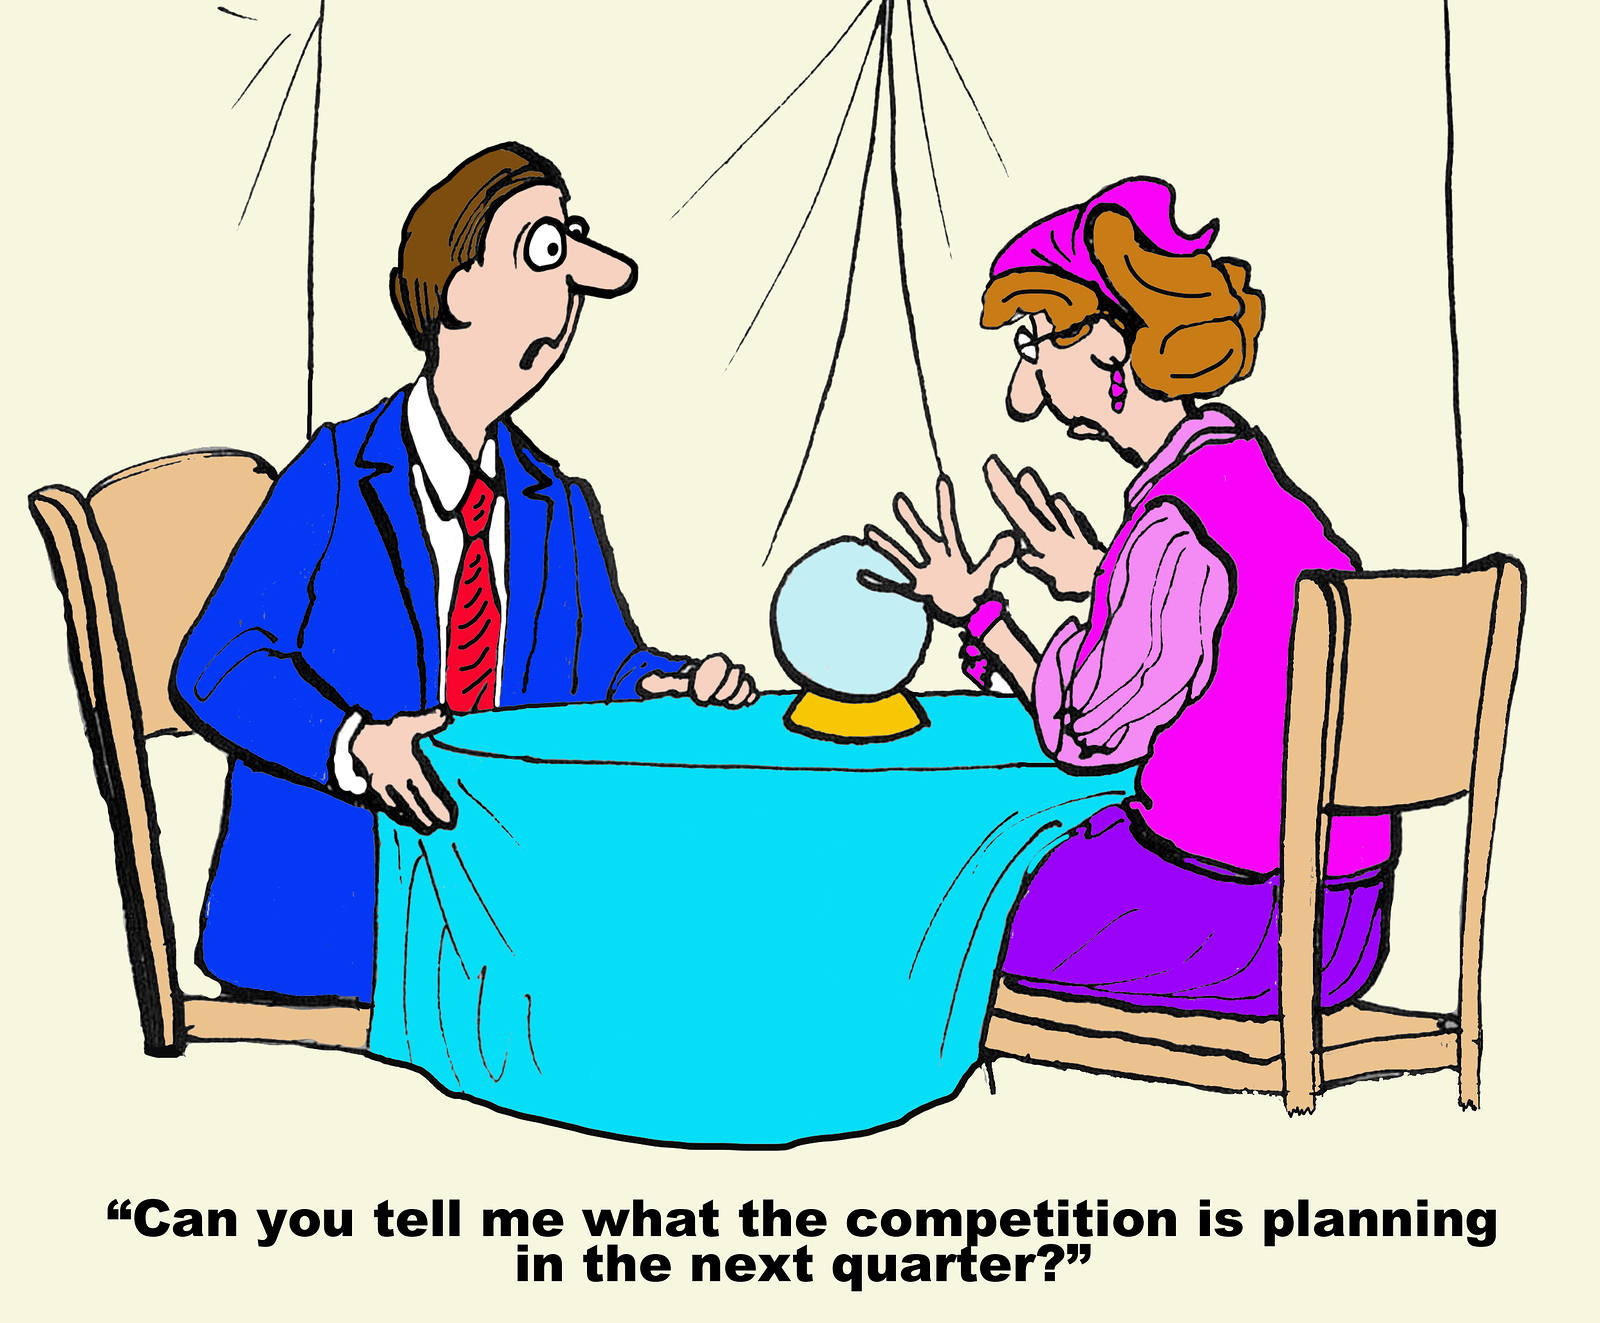 Business cartoon of businessman asking fortune teller with crystal ball, 'Can you tell me what the competition is planning in the next quarter?'.